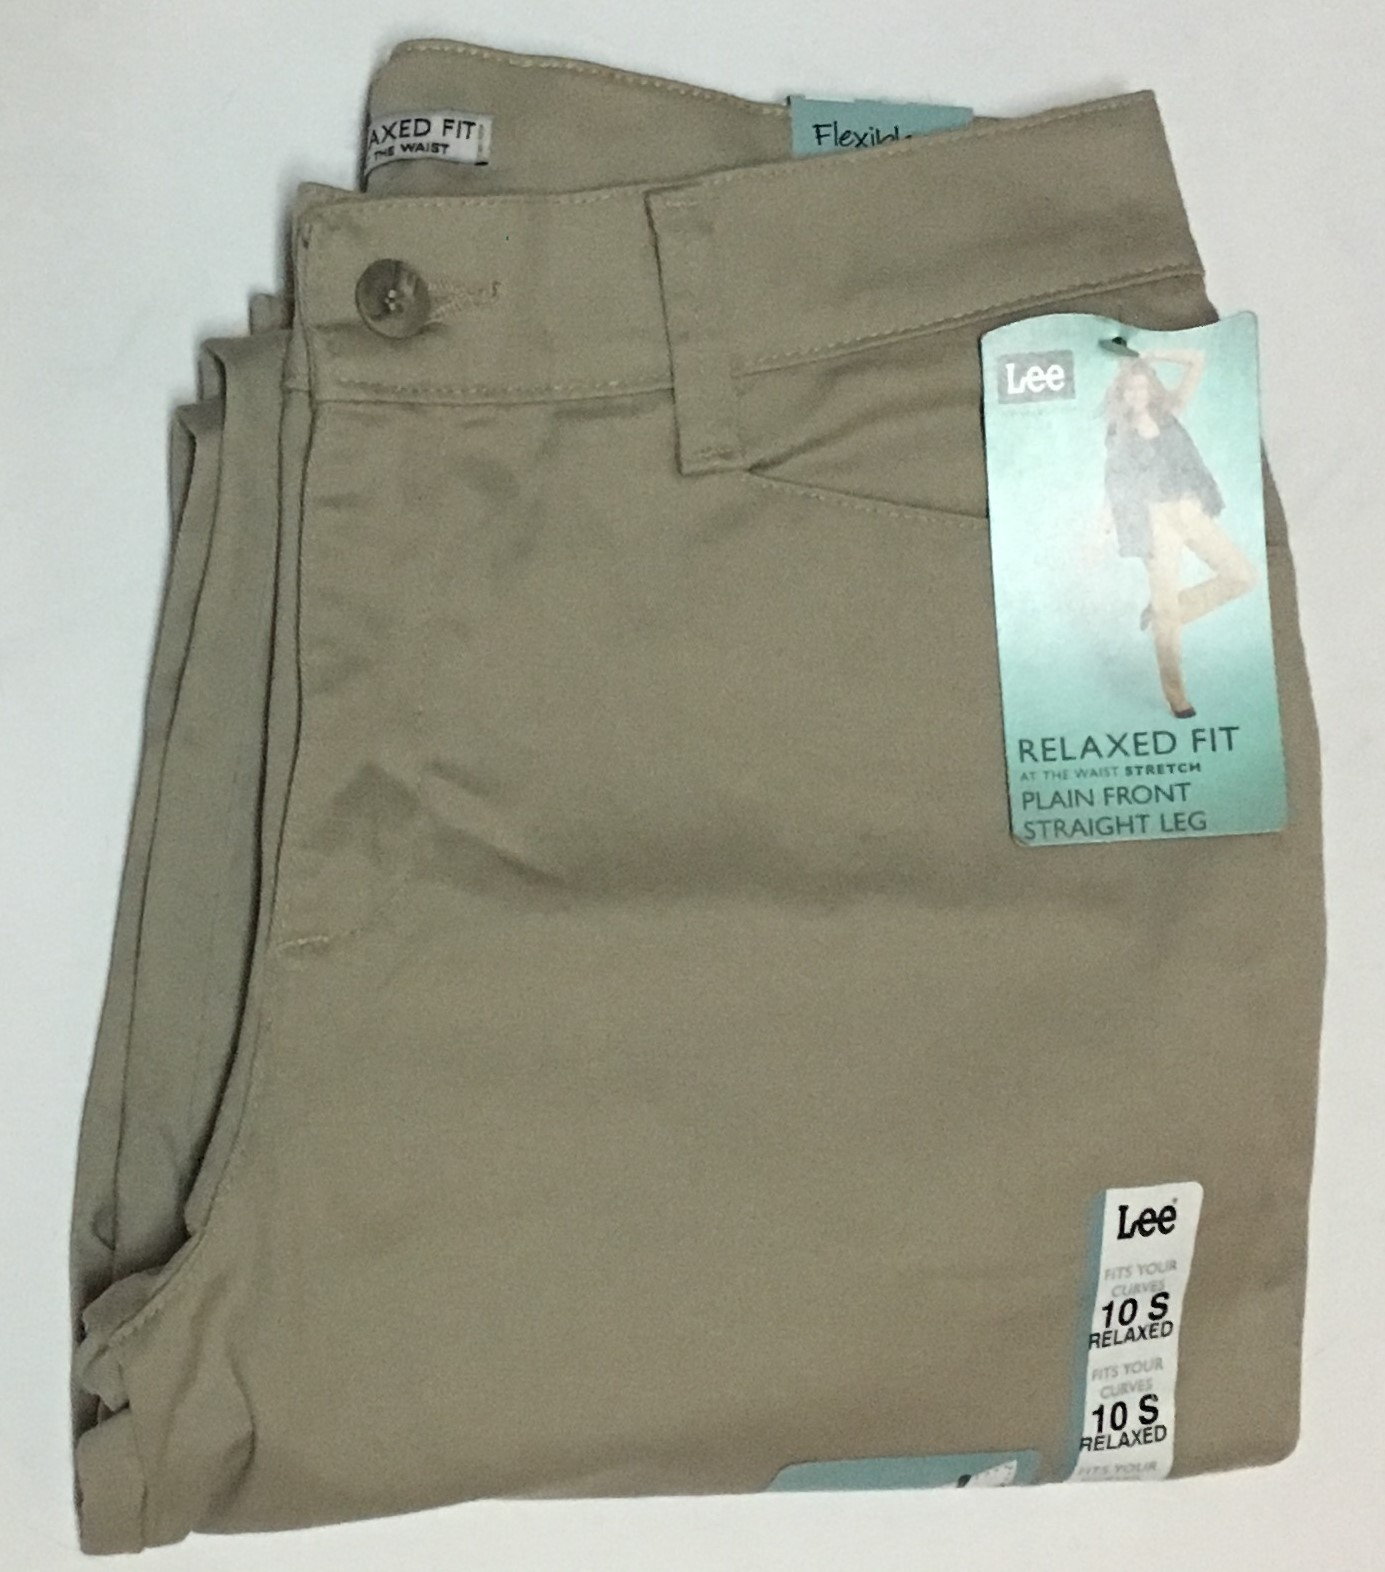 Lee Relaxed Fit Stretch Beige Pants Sz 10 Short Straight Leg NWT image 2